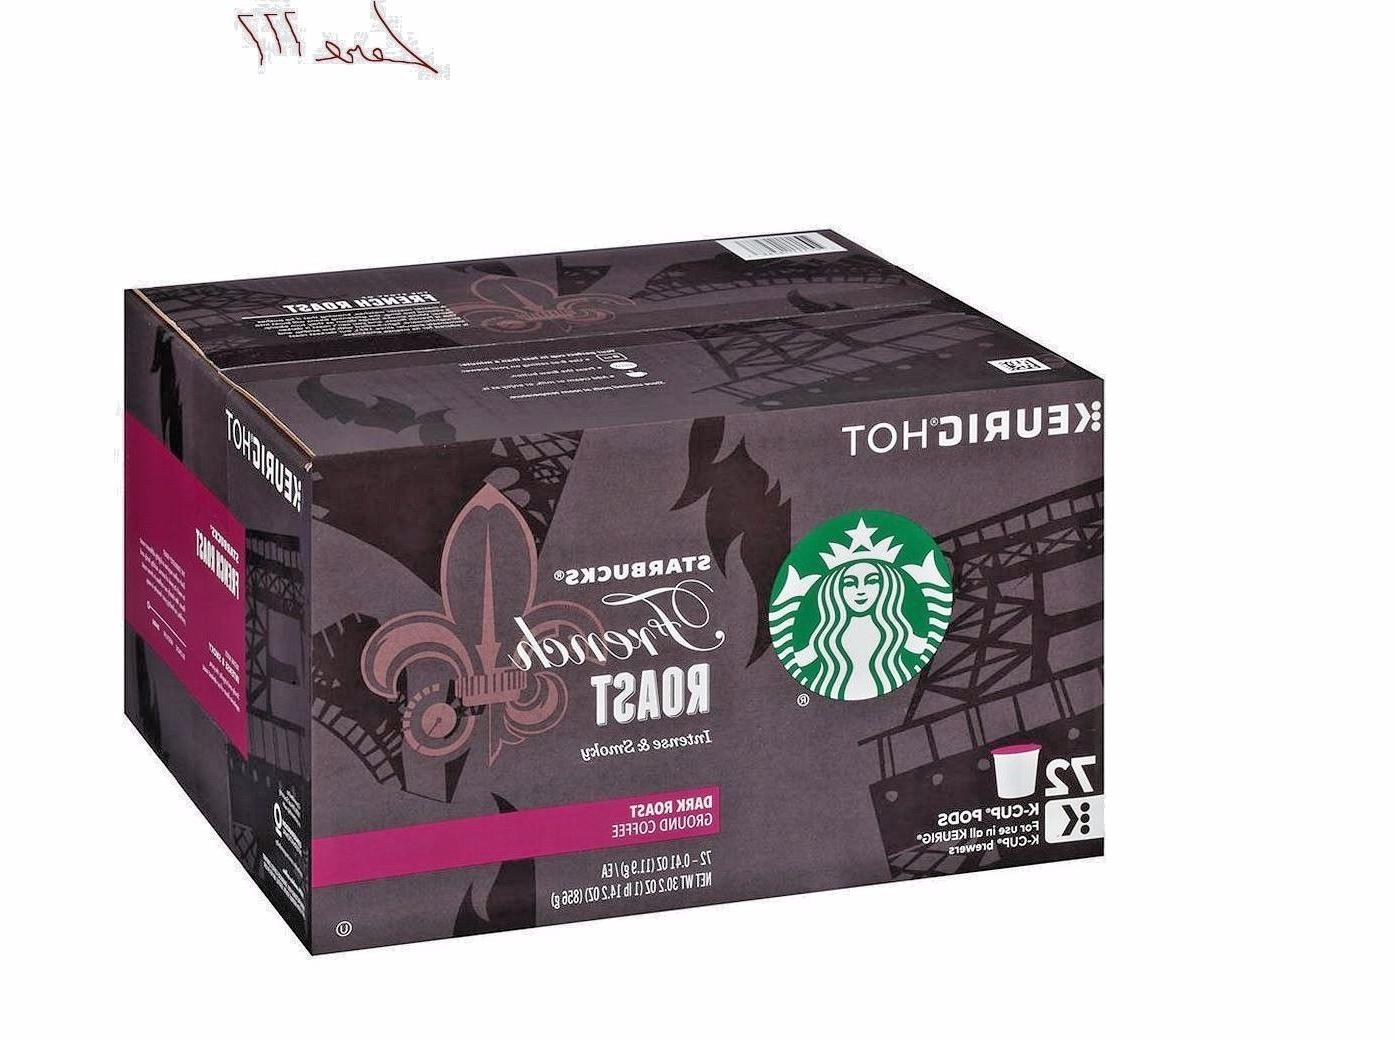 Starbucks French Roast Coffee